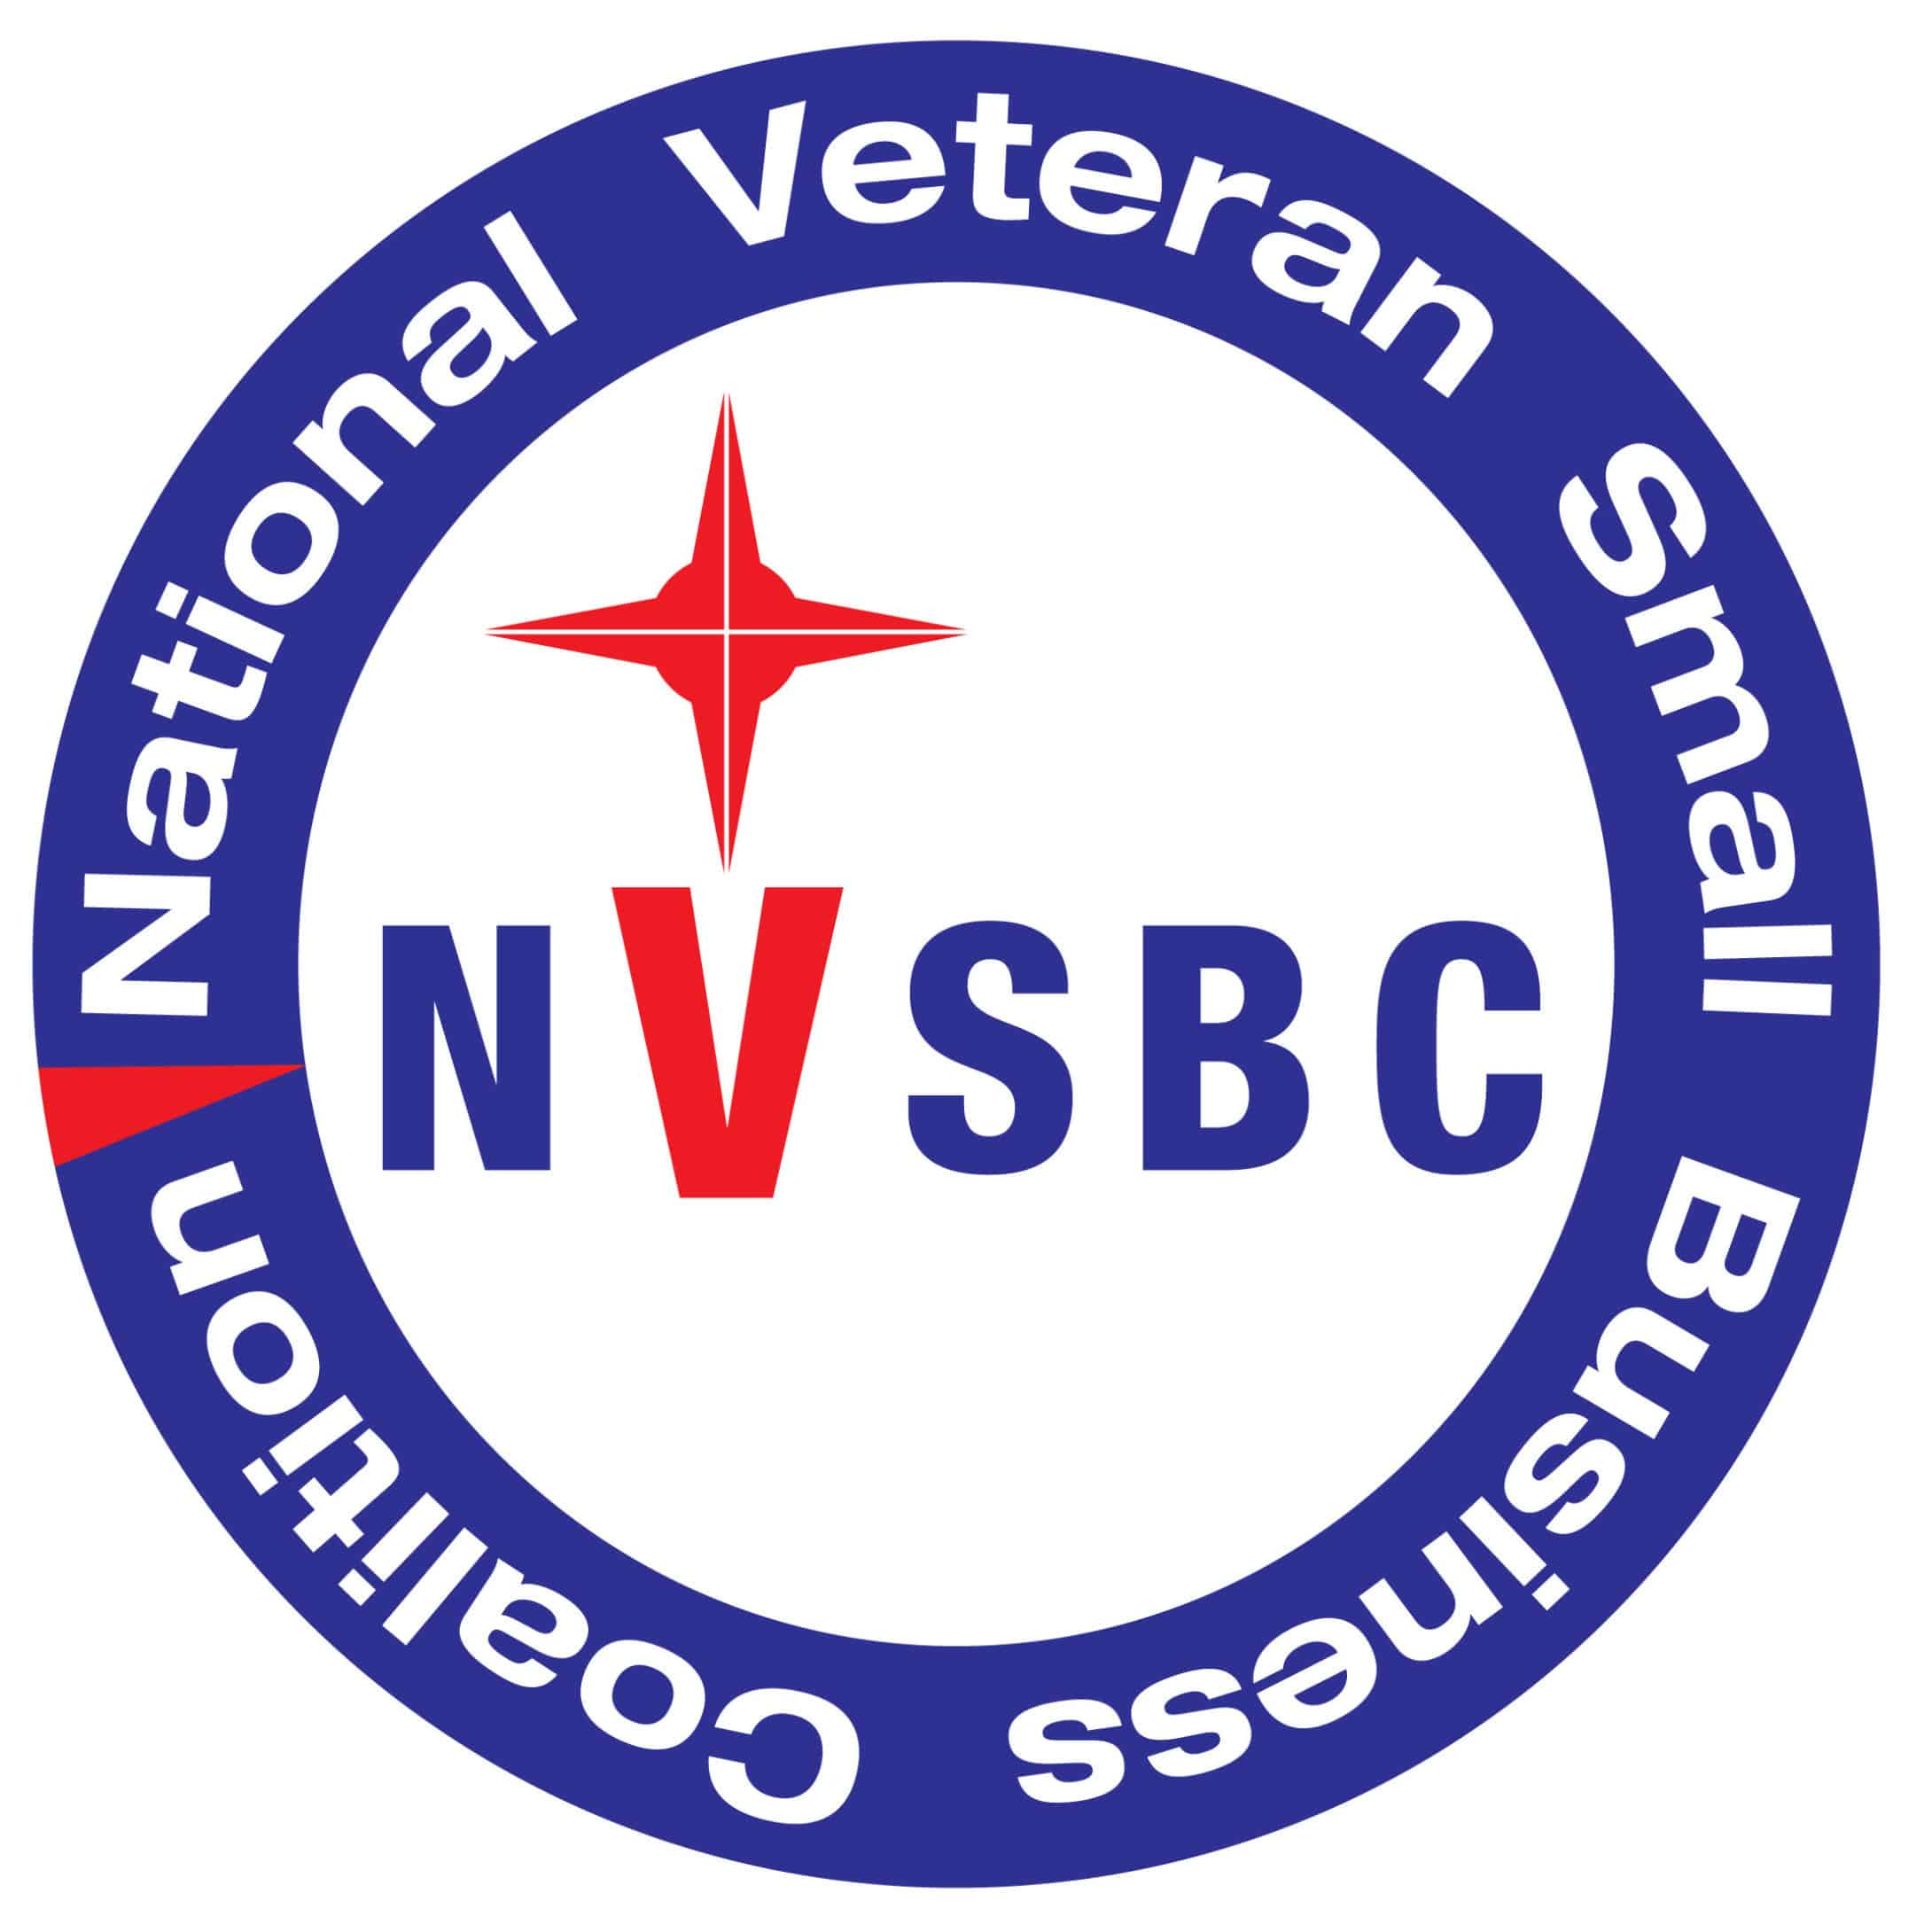 Scott GR-NVSBC-LOGO copy-2